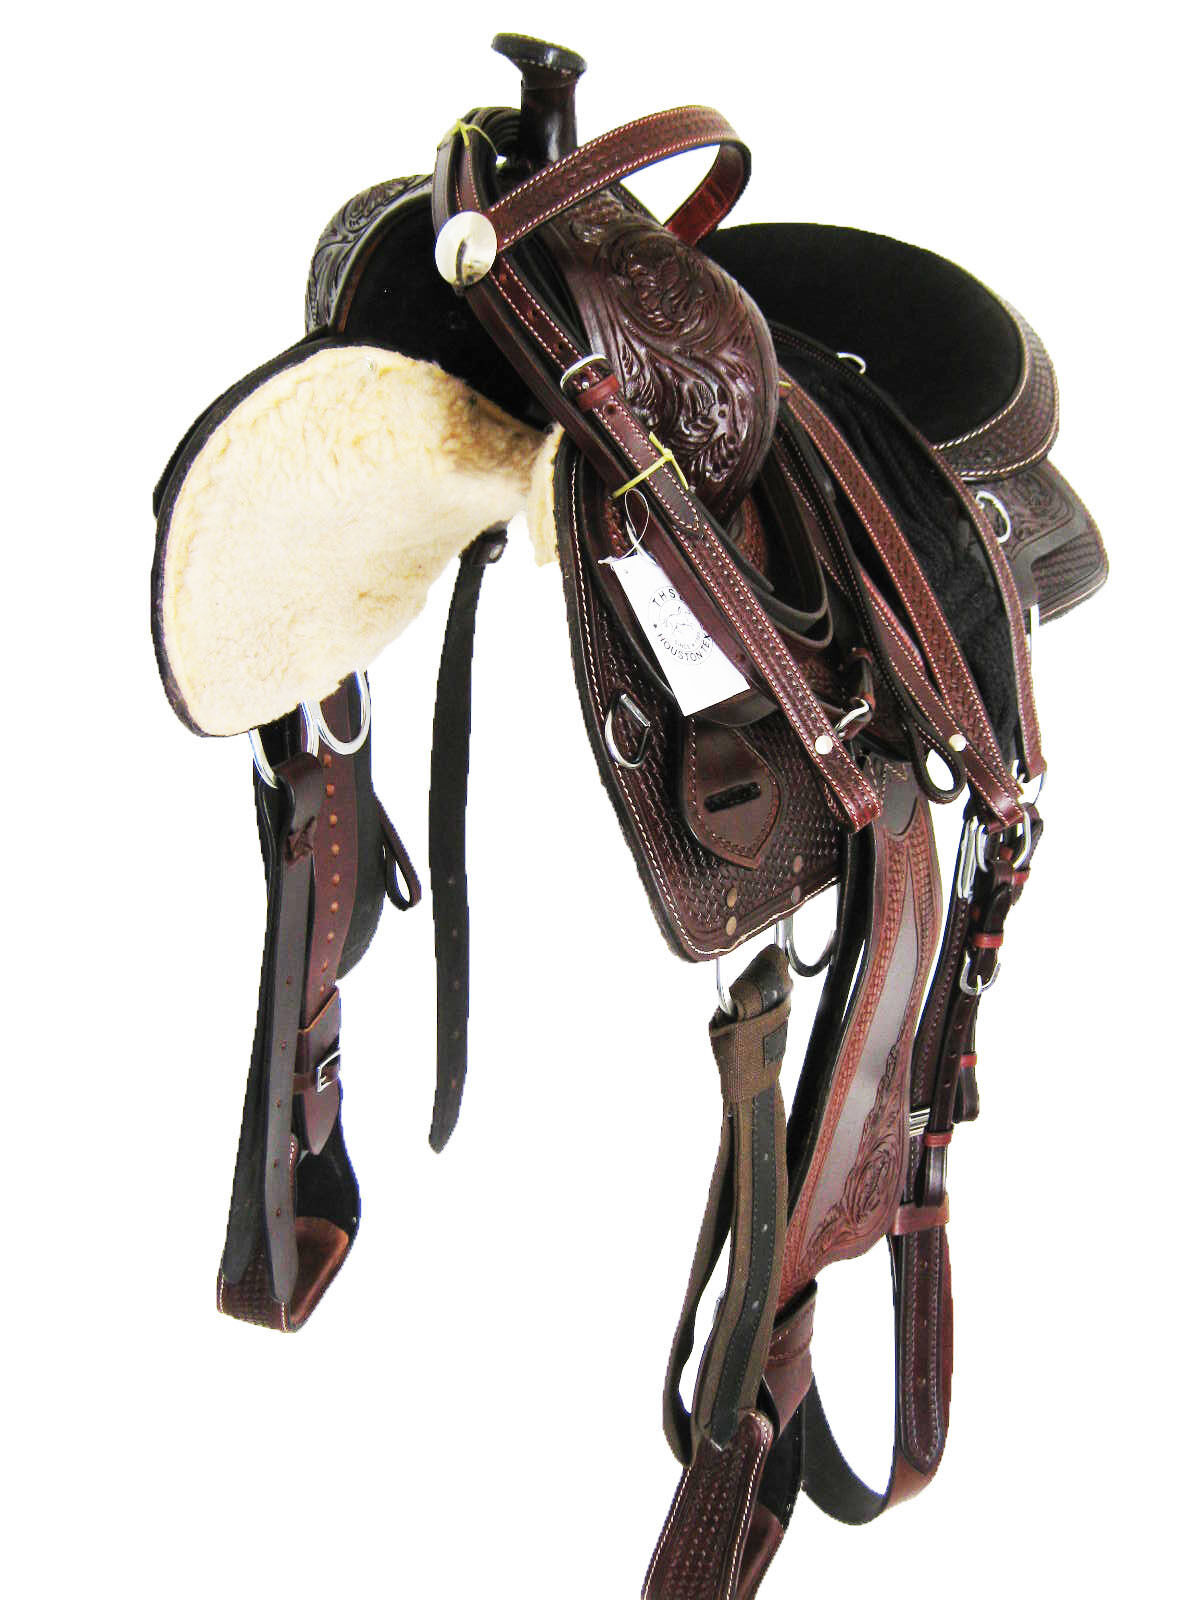 THSL  WESTERN ENDURANCE SADDLE SET  WITH HORN - MAHOGANY BROWN 16  (1085)  timeless classic